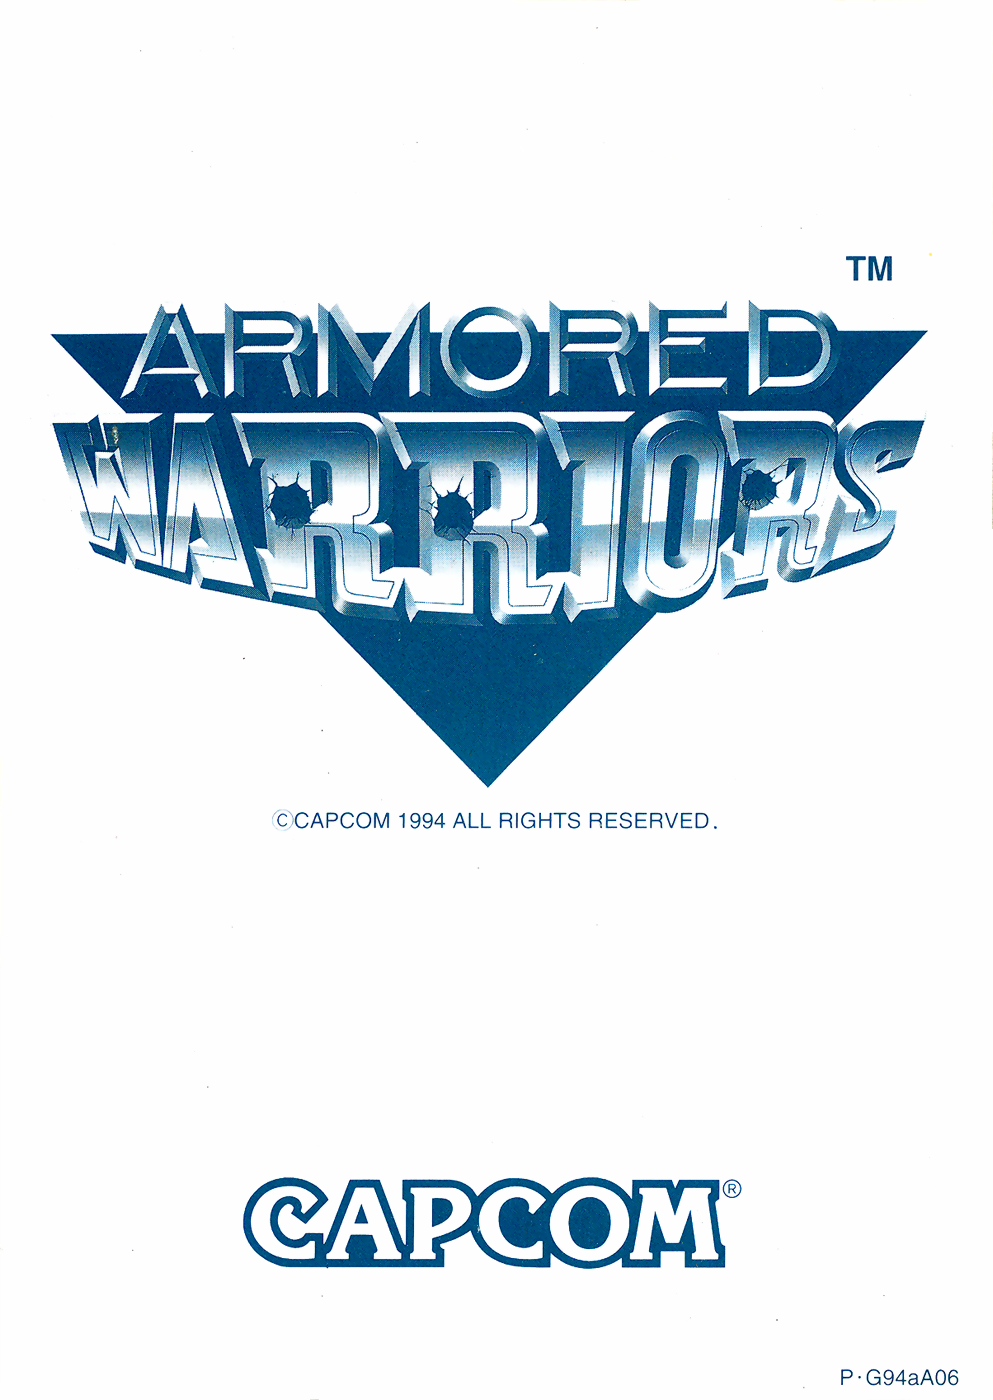 Armored Warriors (USA 941024) flyer